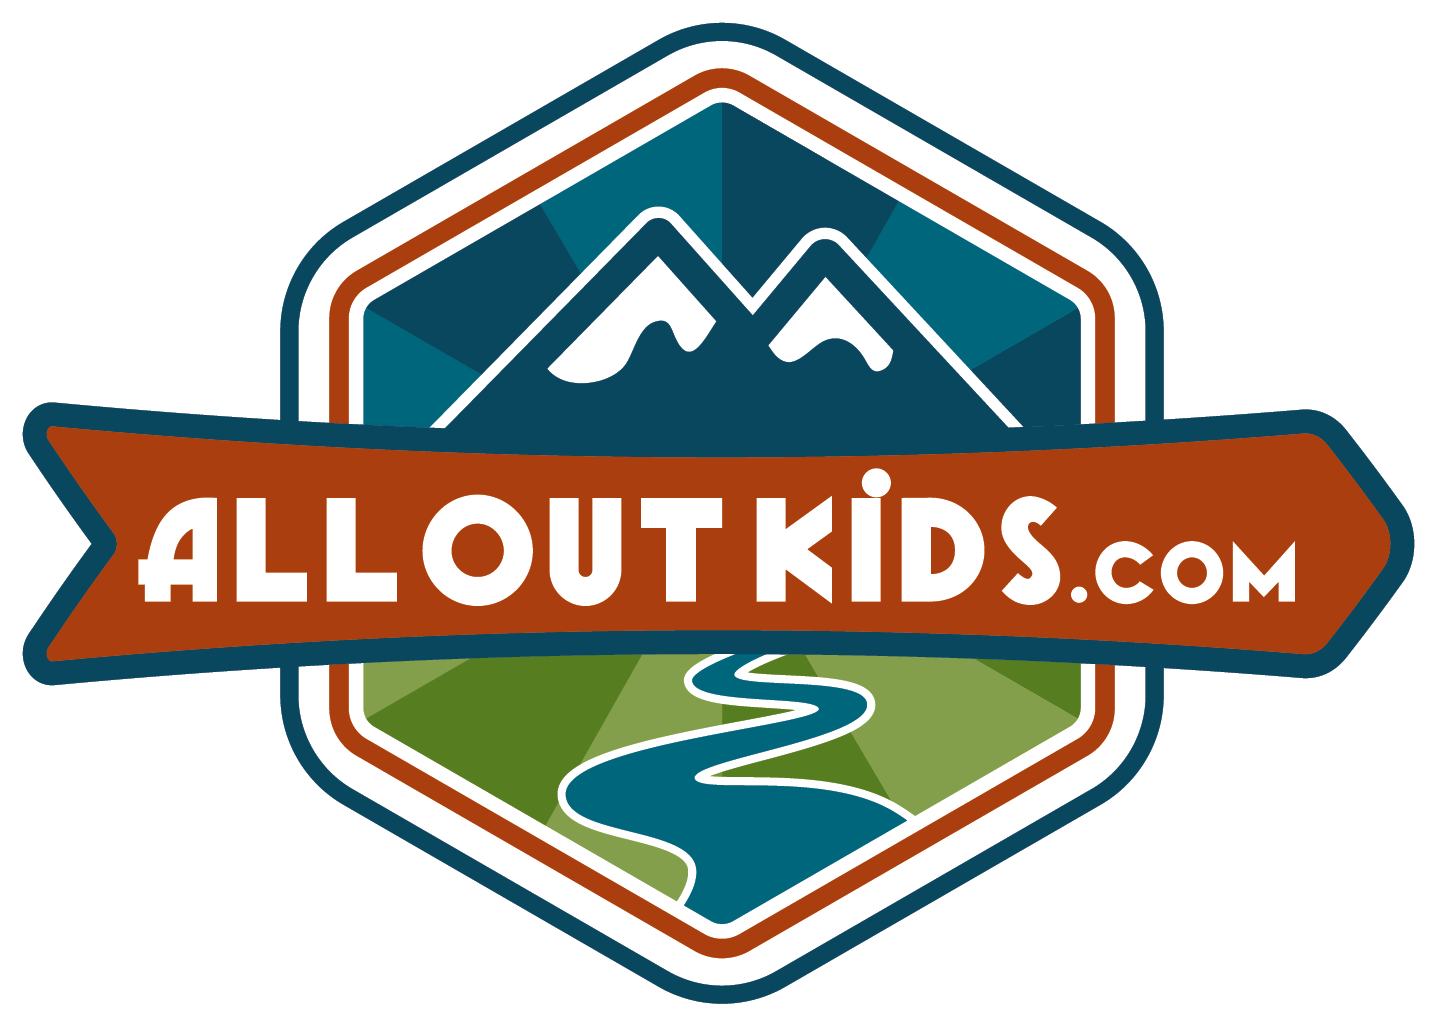 all out kids logo